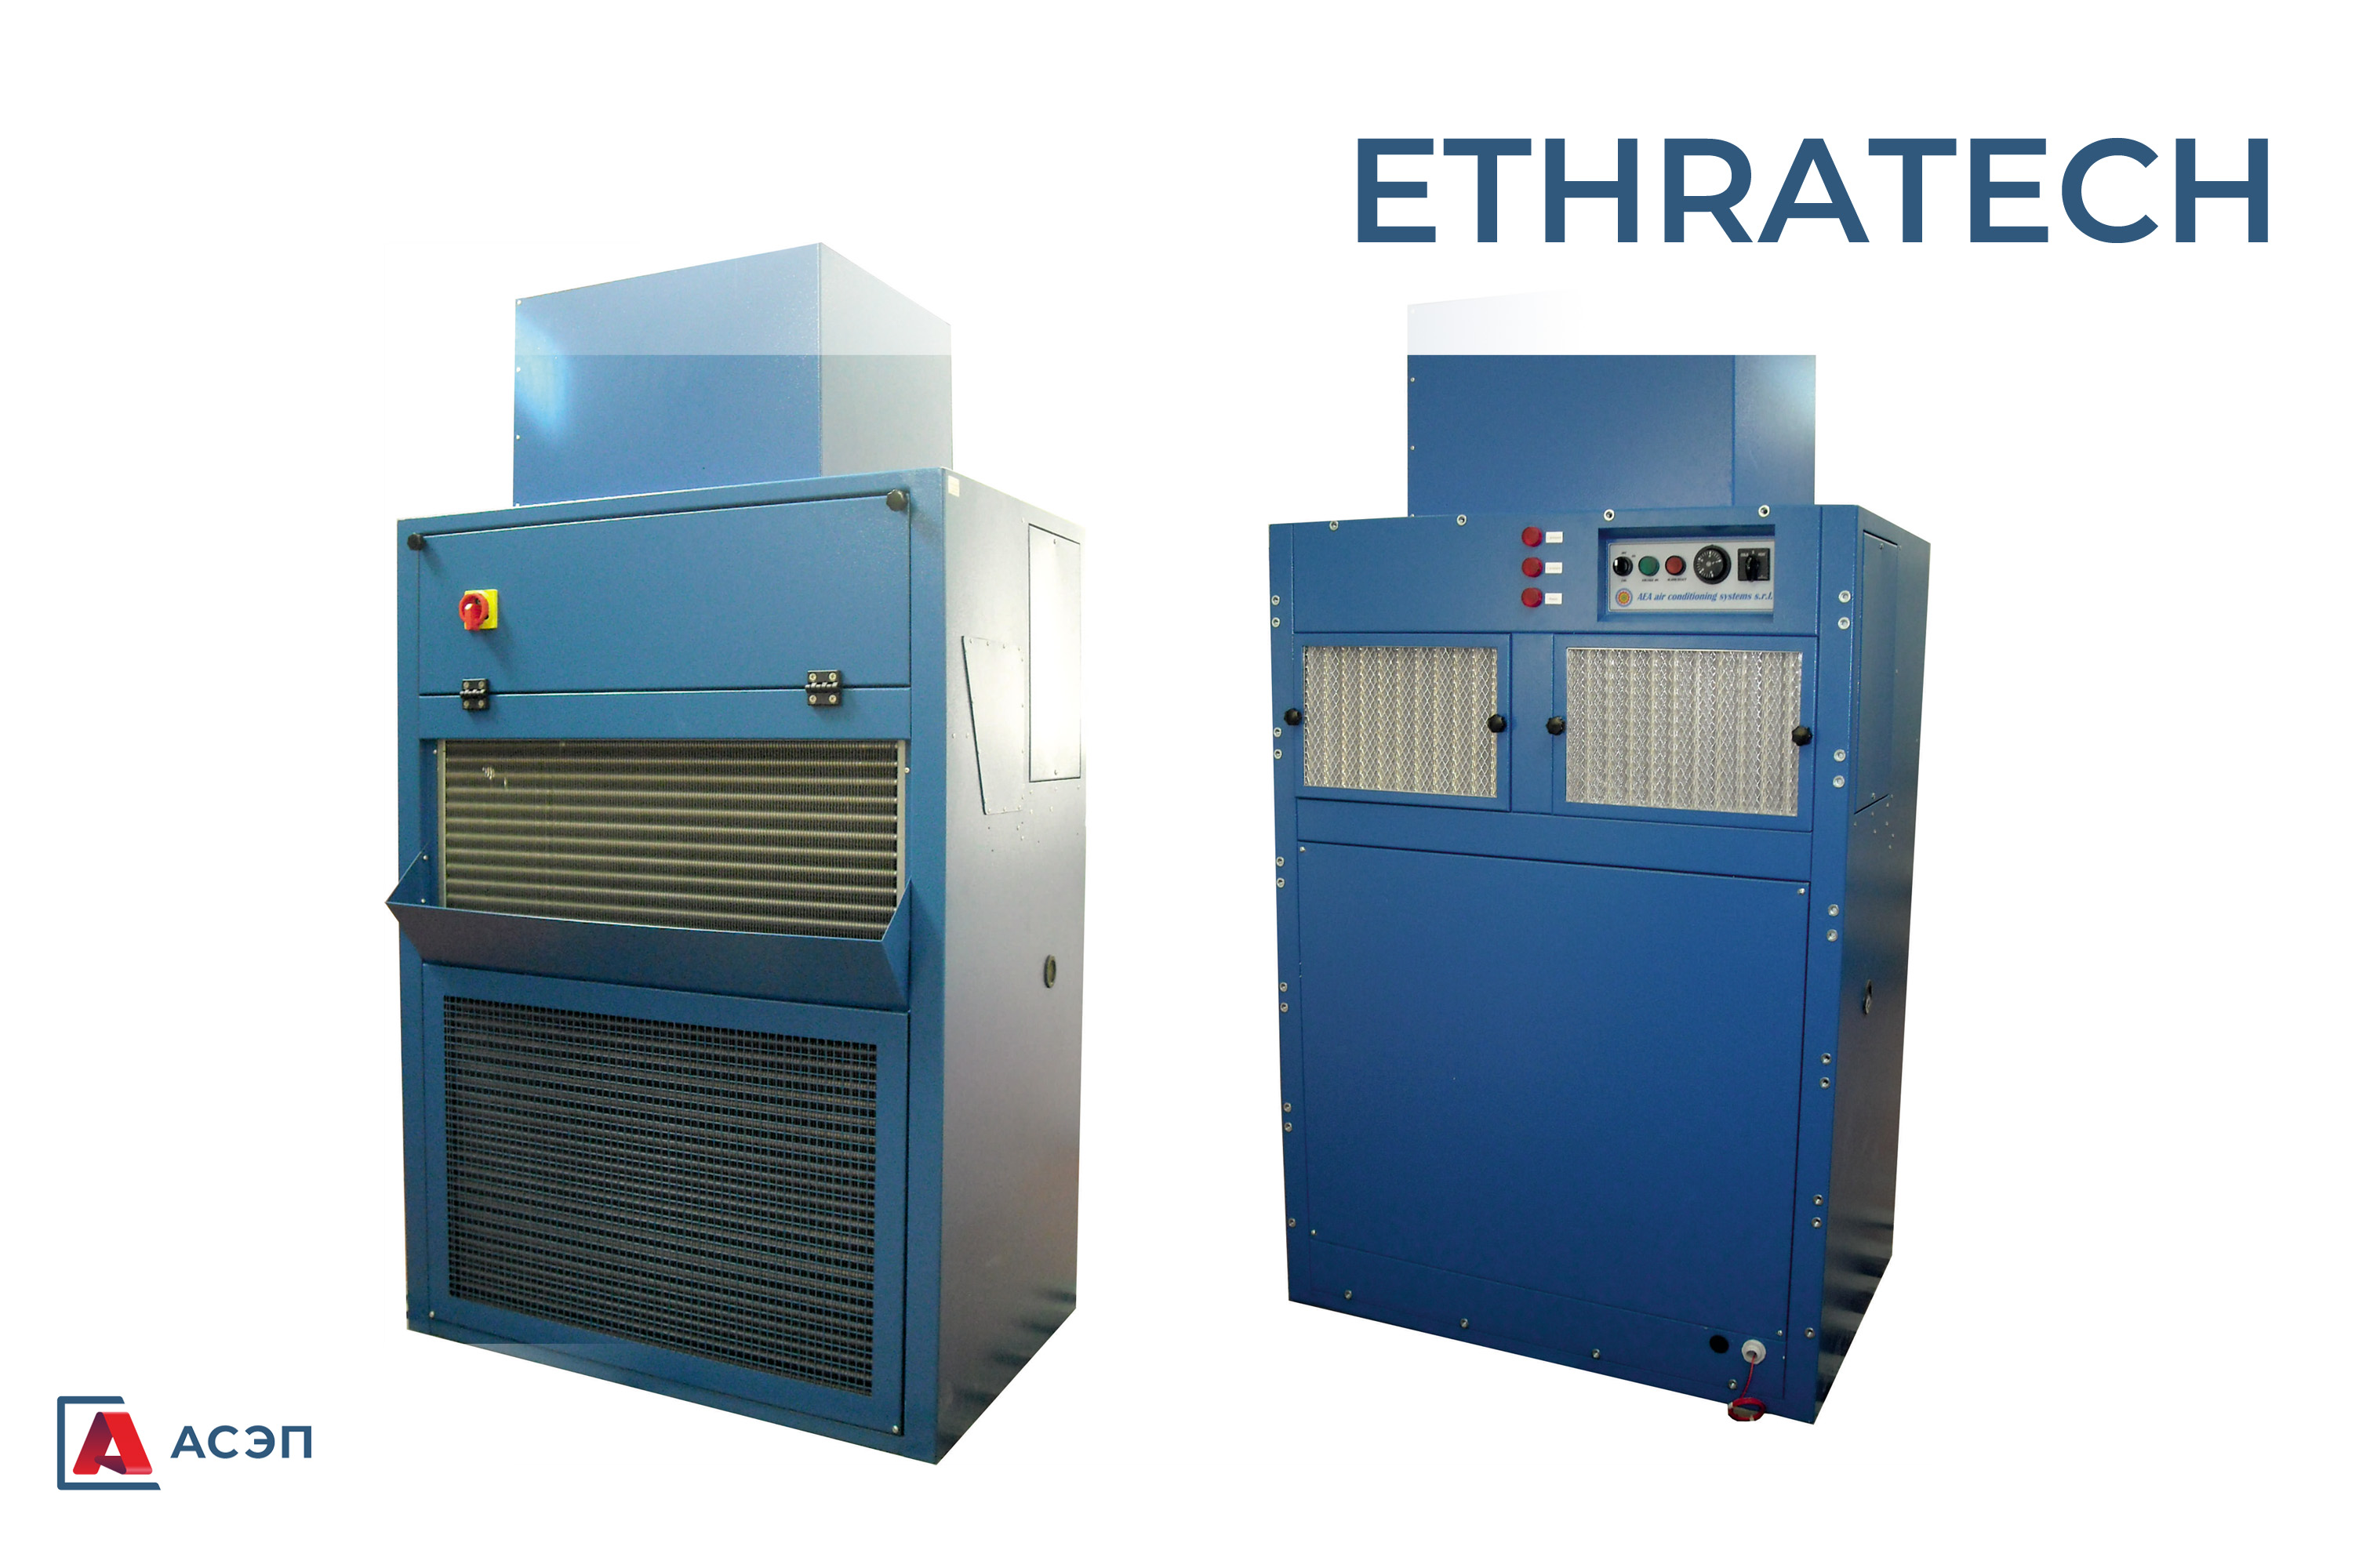 EthraTech